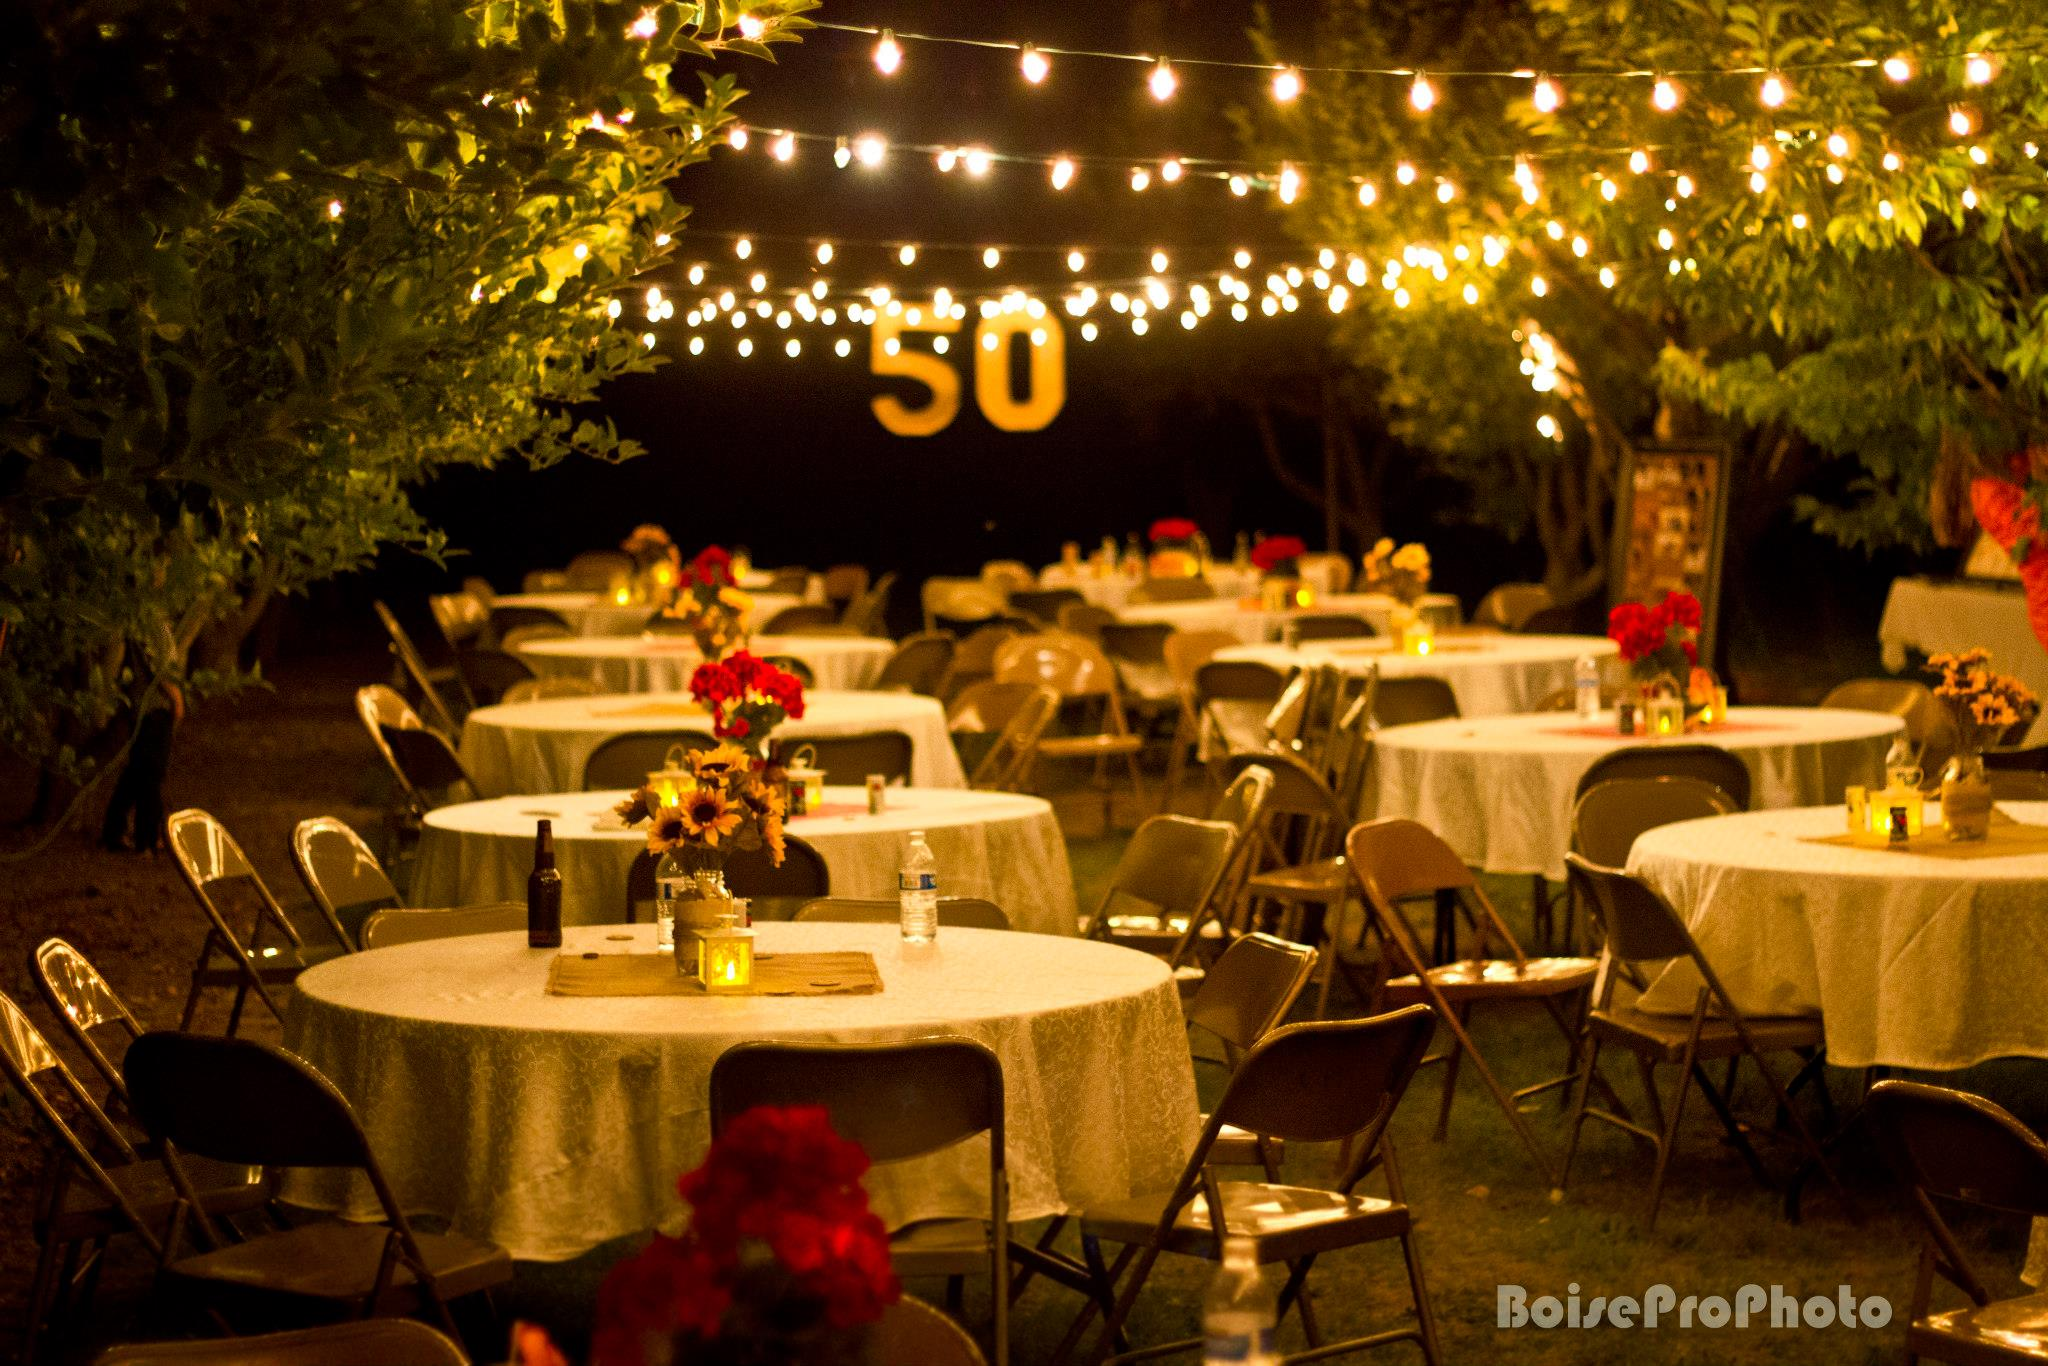 Diy 50th wedding anniversary party from salty bison for 50th wedding anniversary decoration ideas